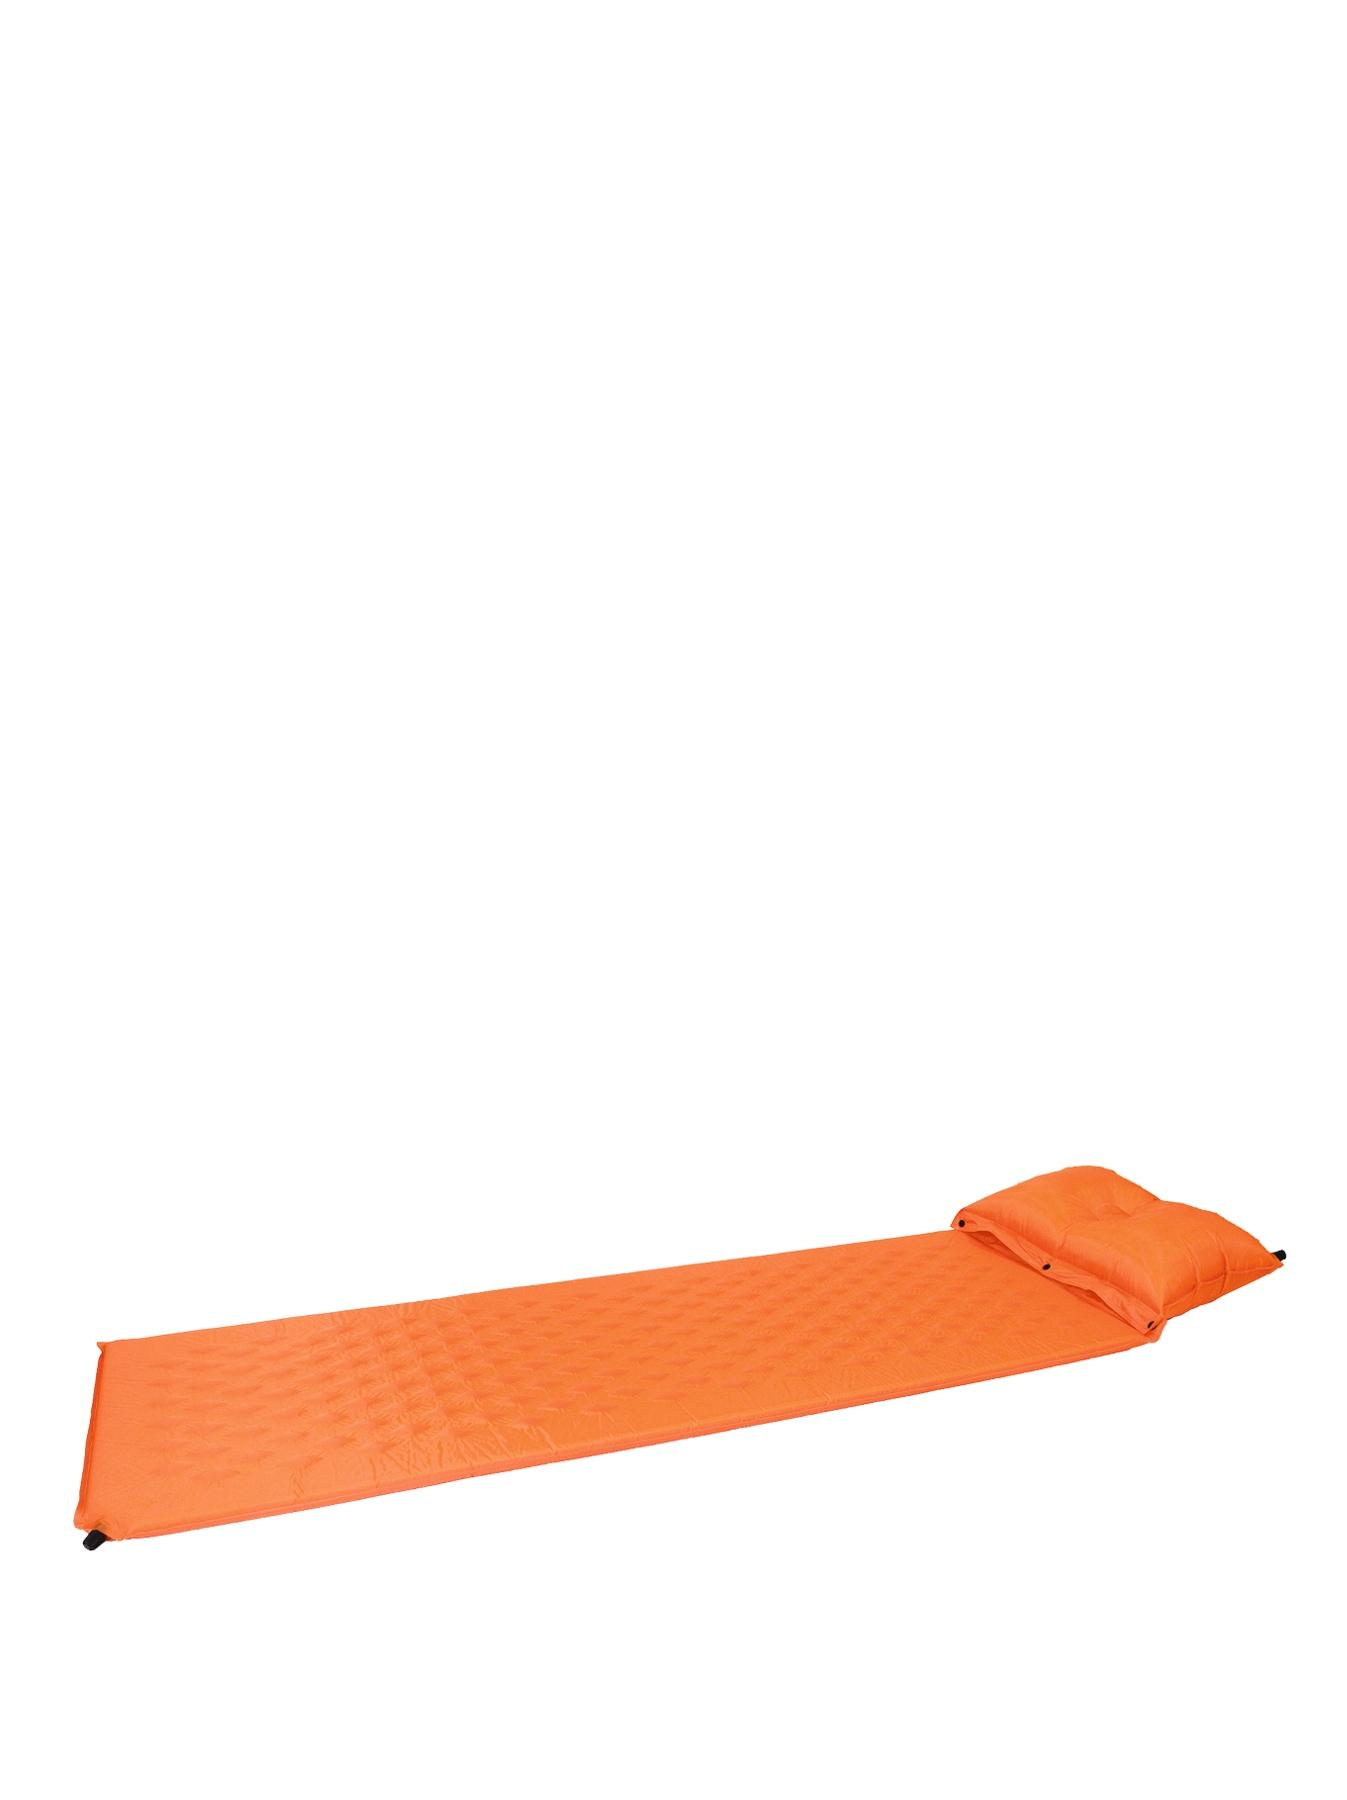 Self Inflating Mat with Pillow and Dry Sac